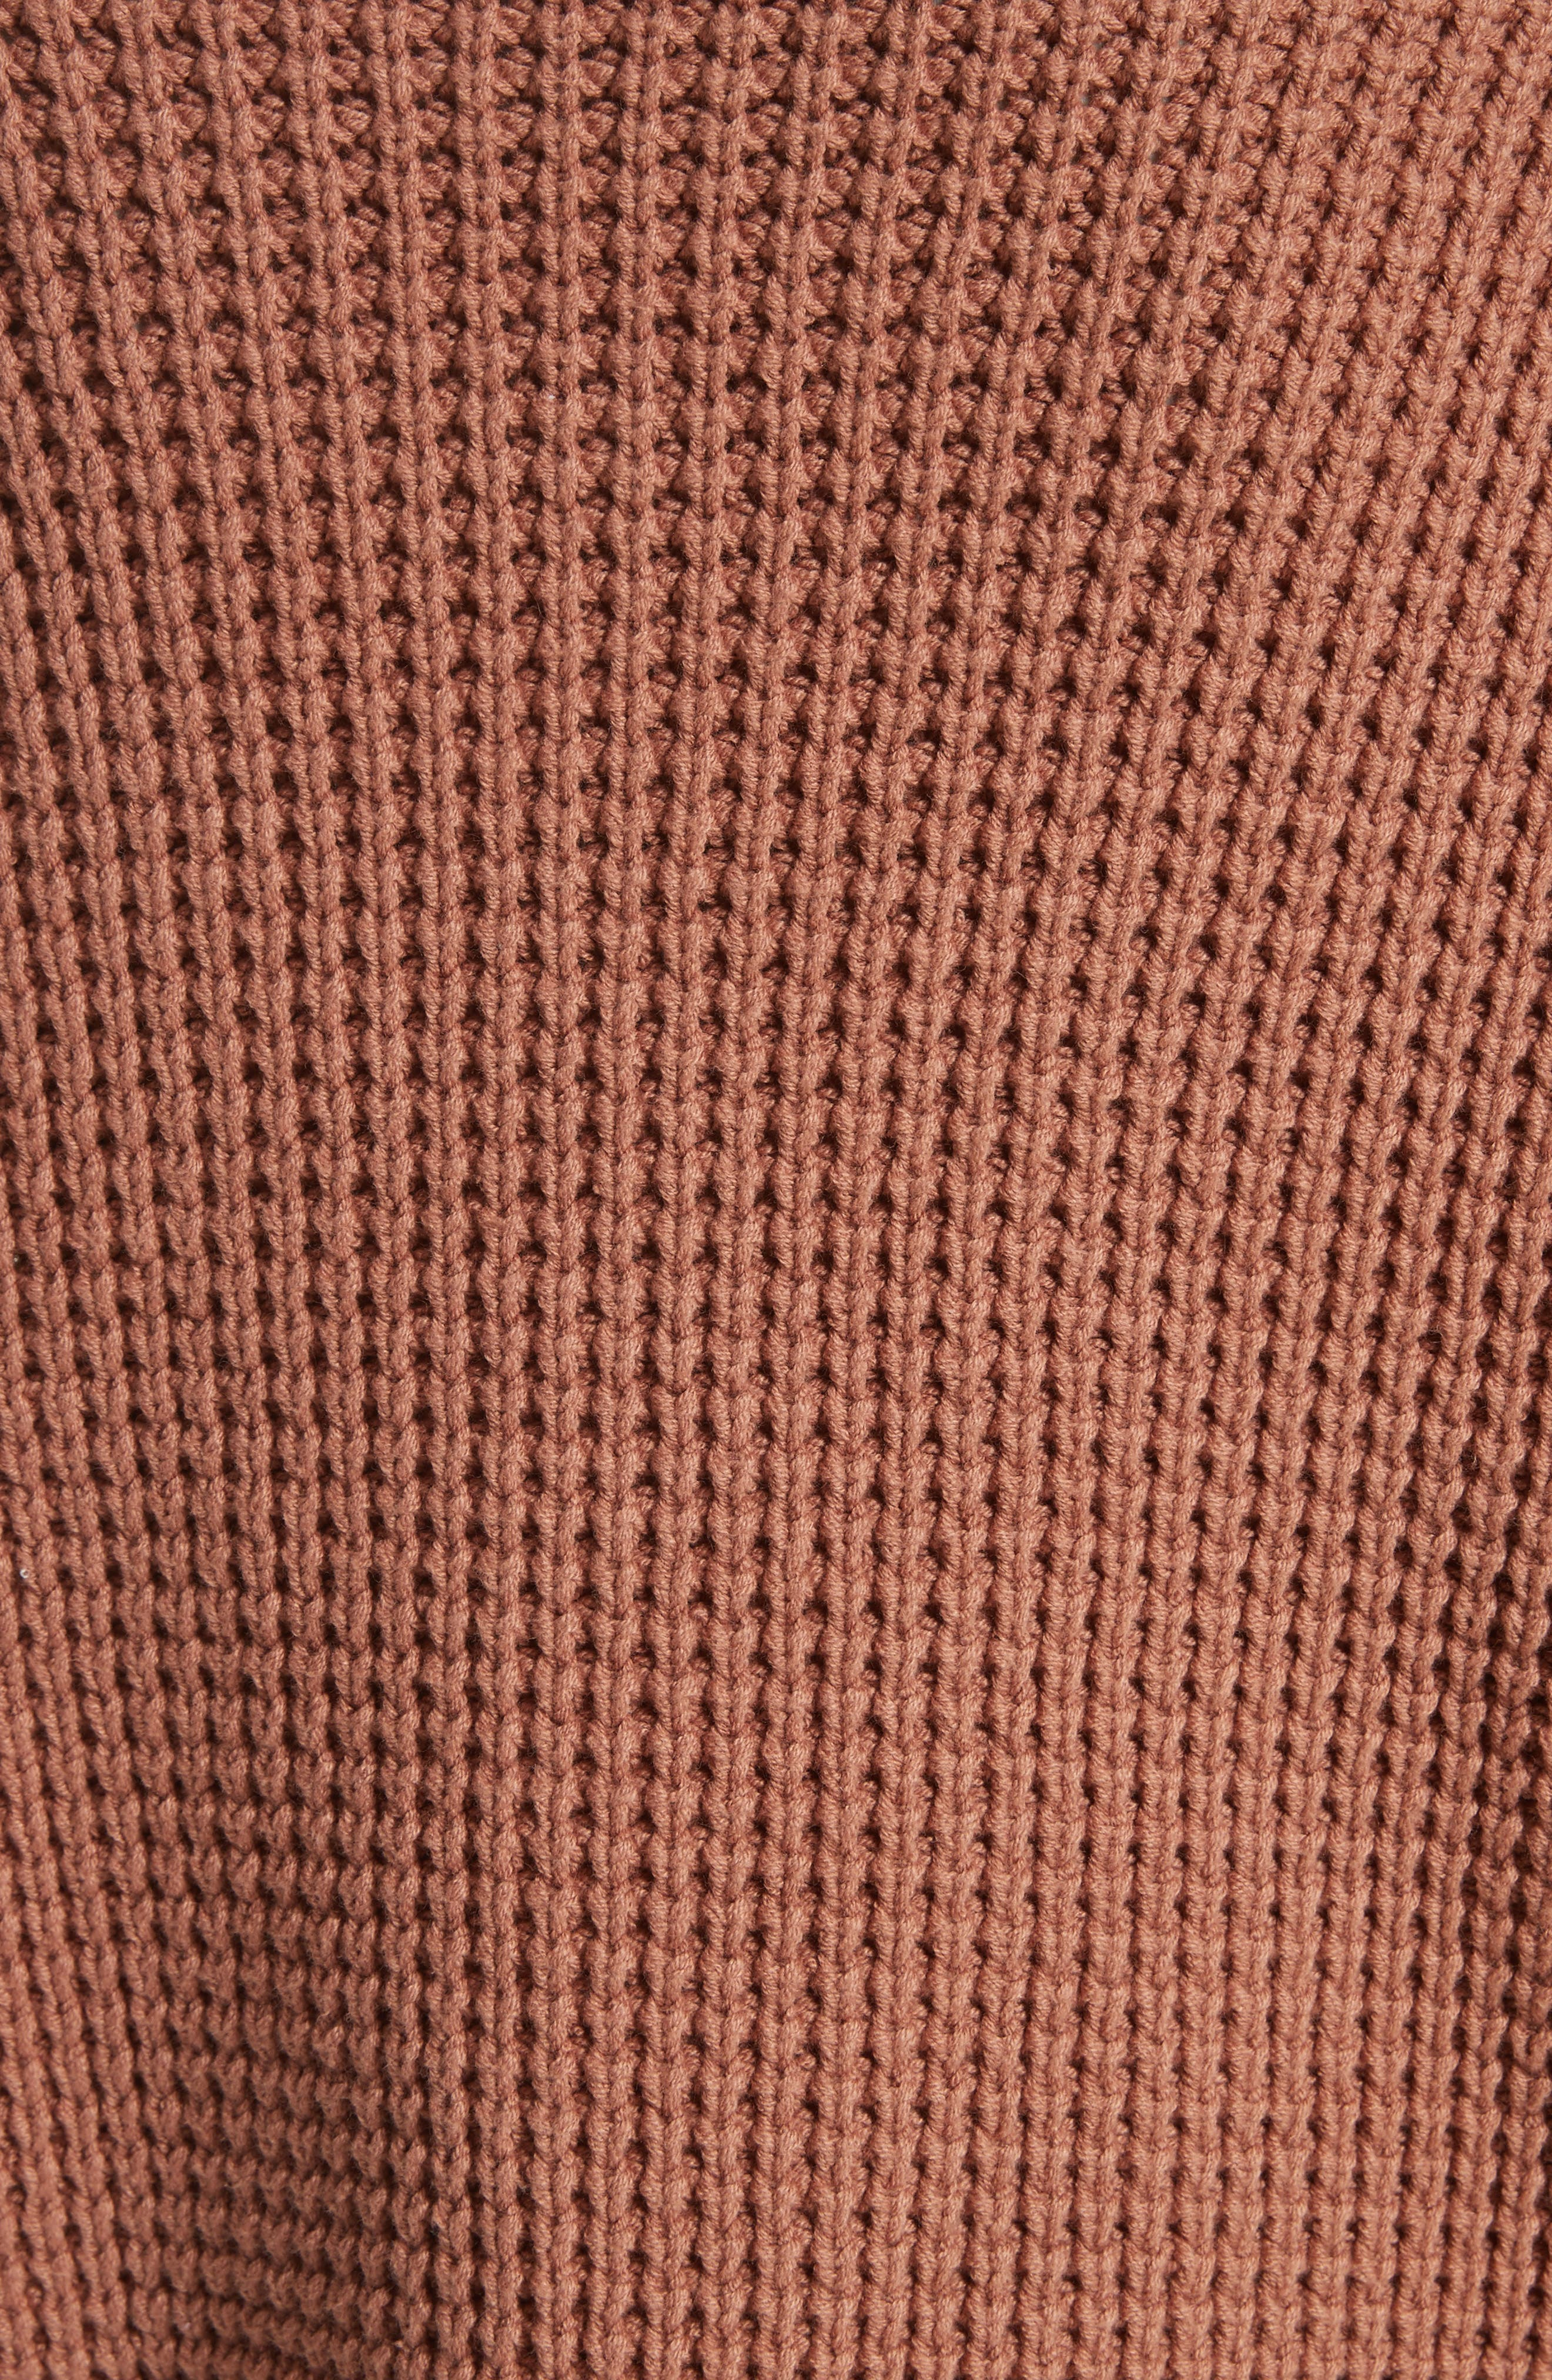 Park City Pullover,                             Alternate thumbnail 5, color,                             209